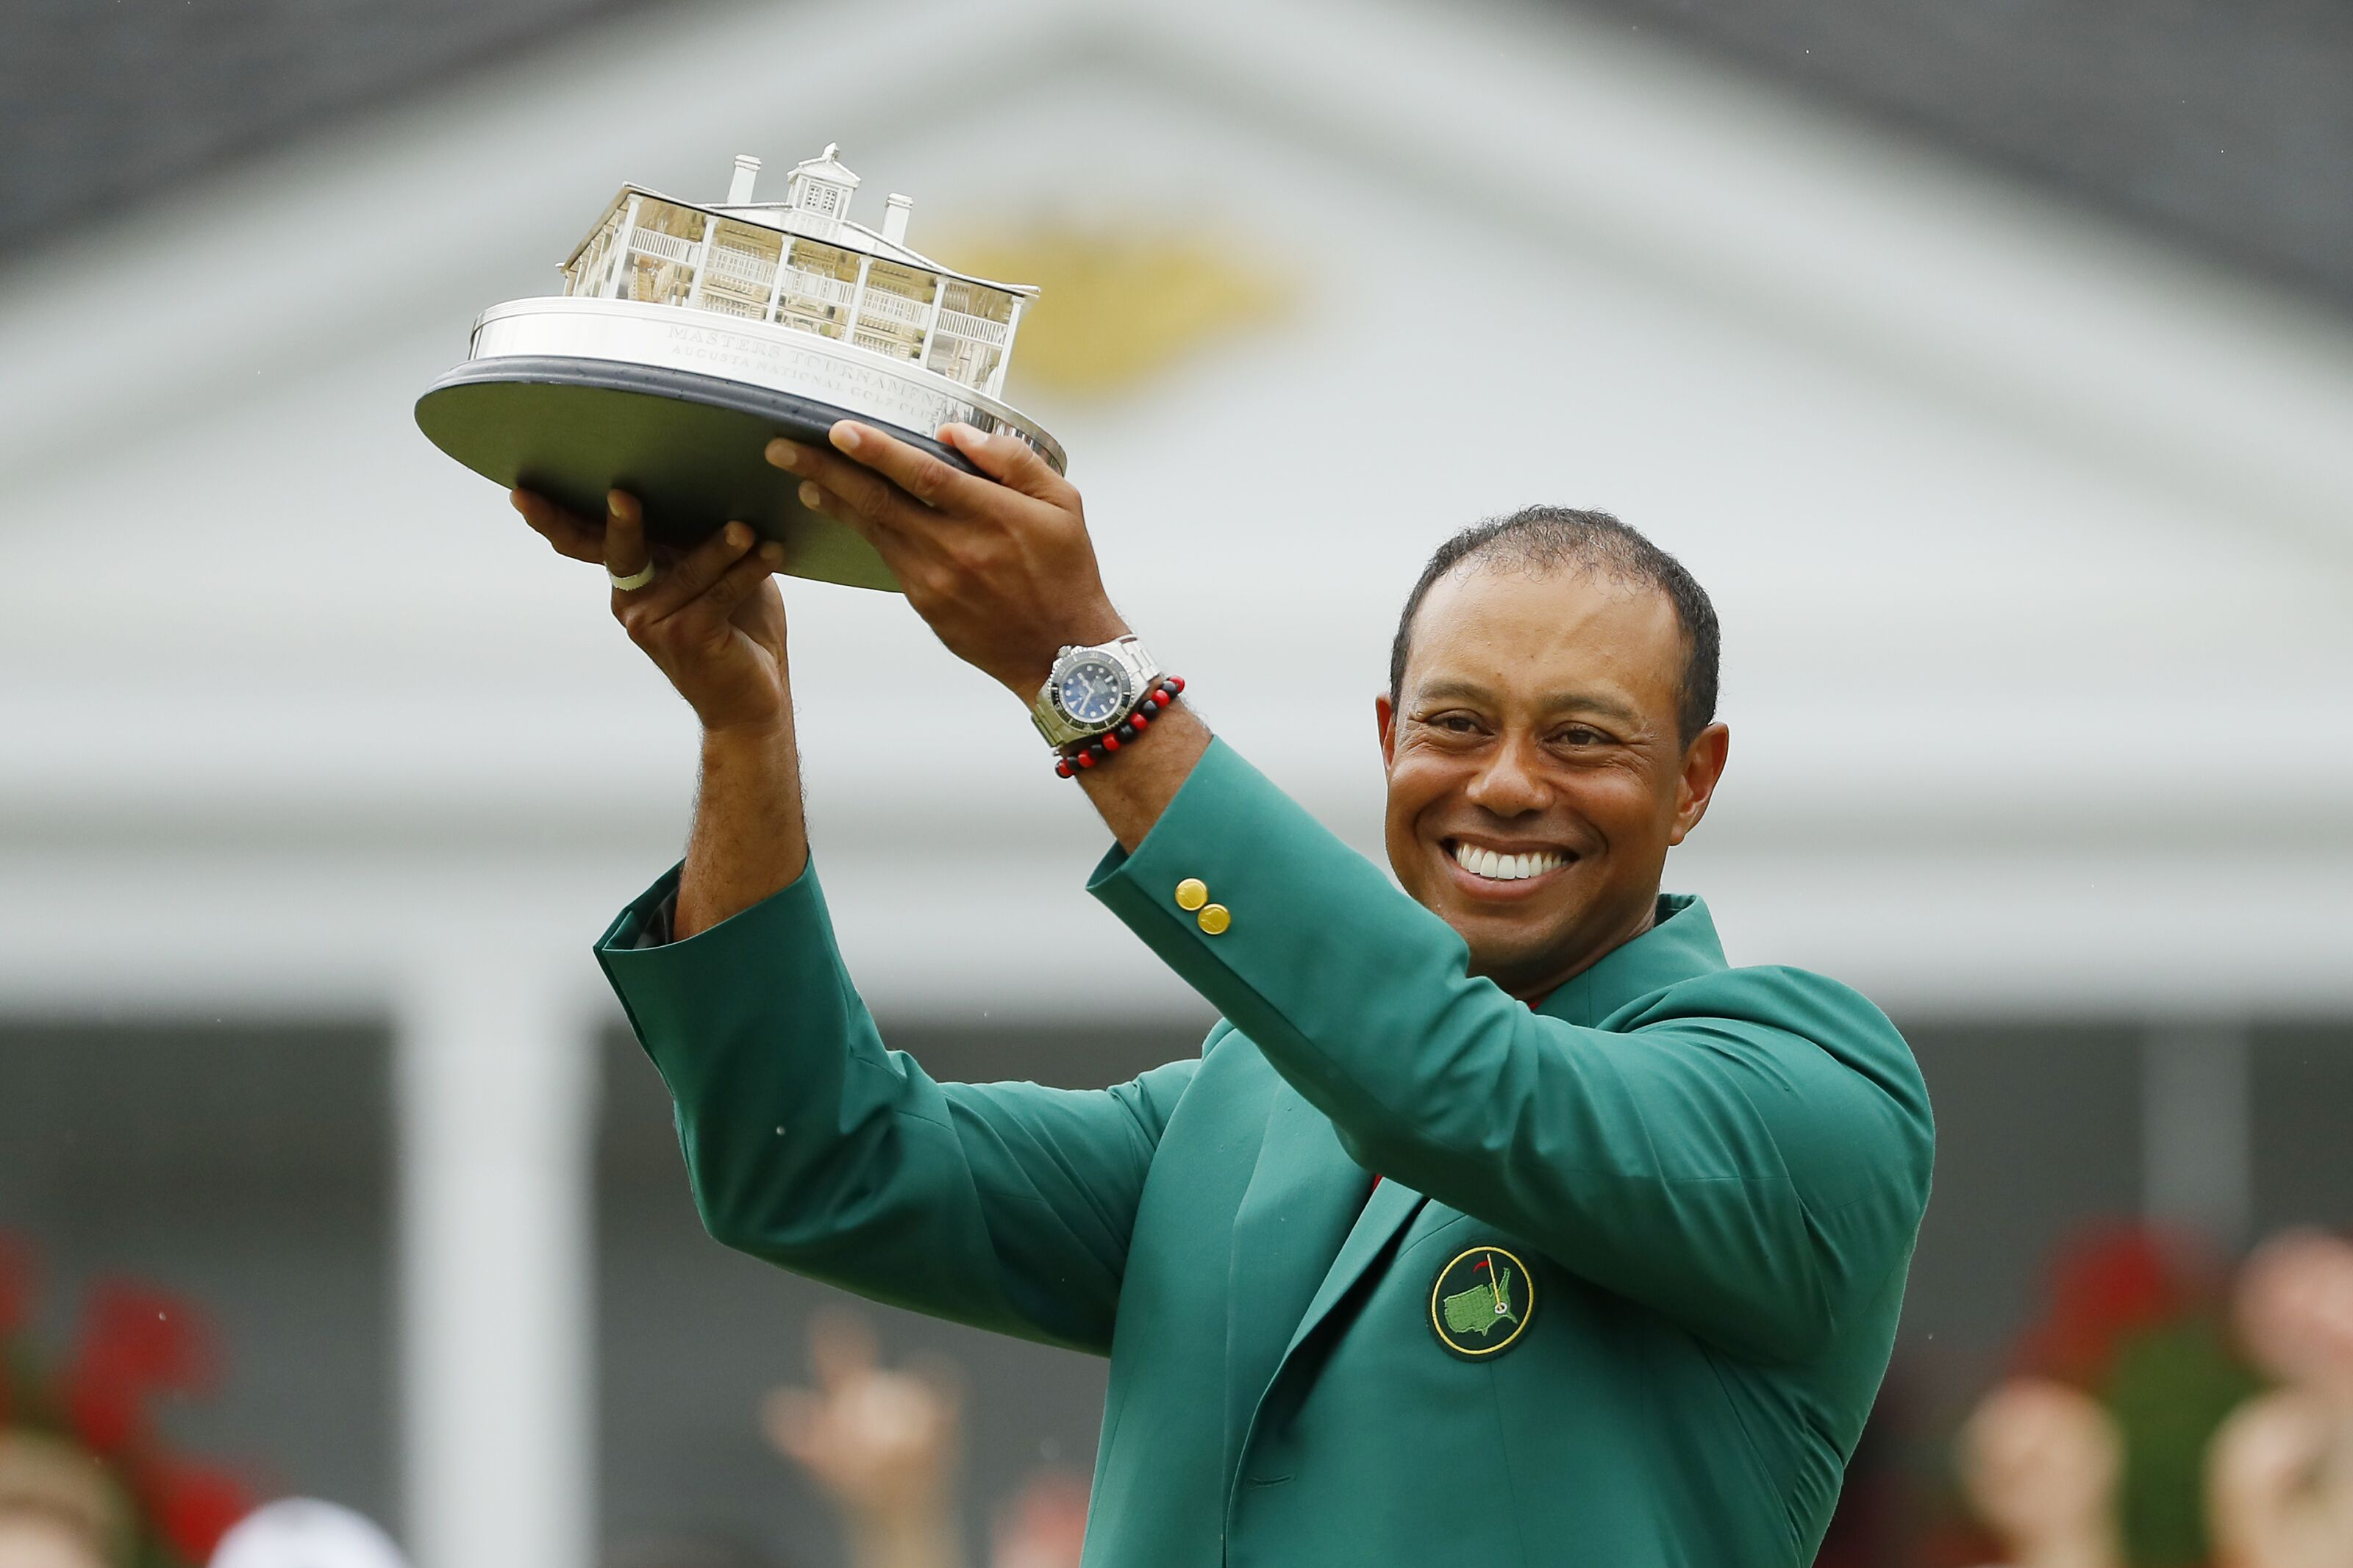 The Masters 2019 purse: How much did Tiger Woods win?